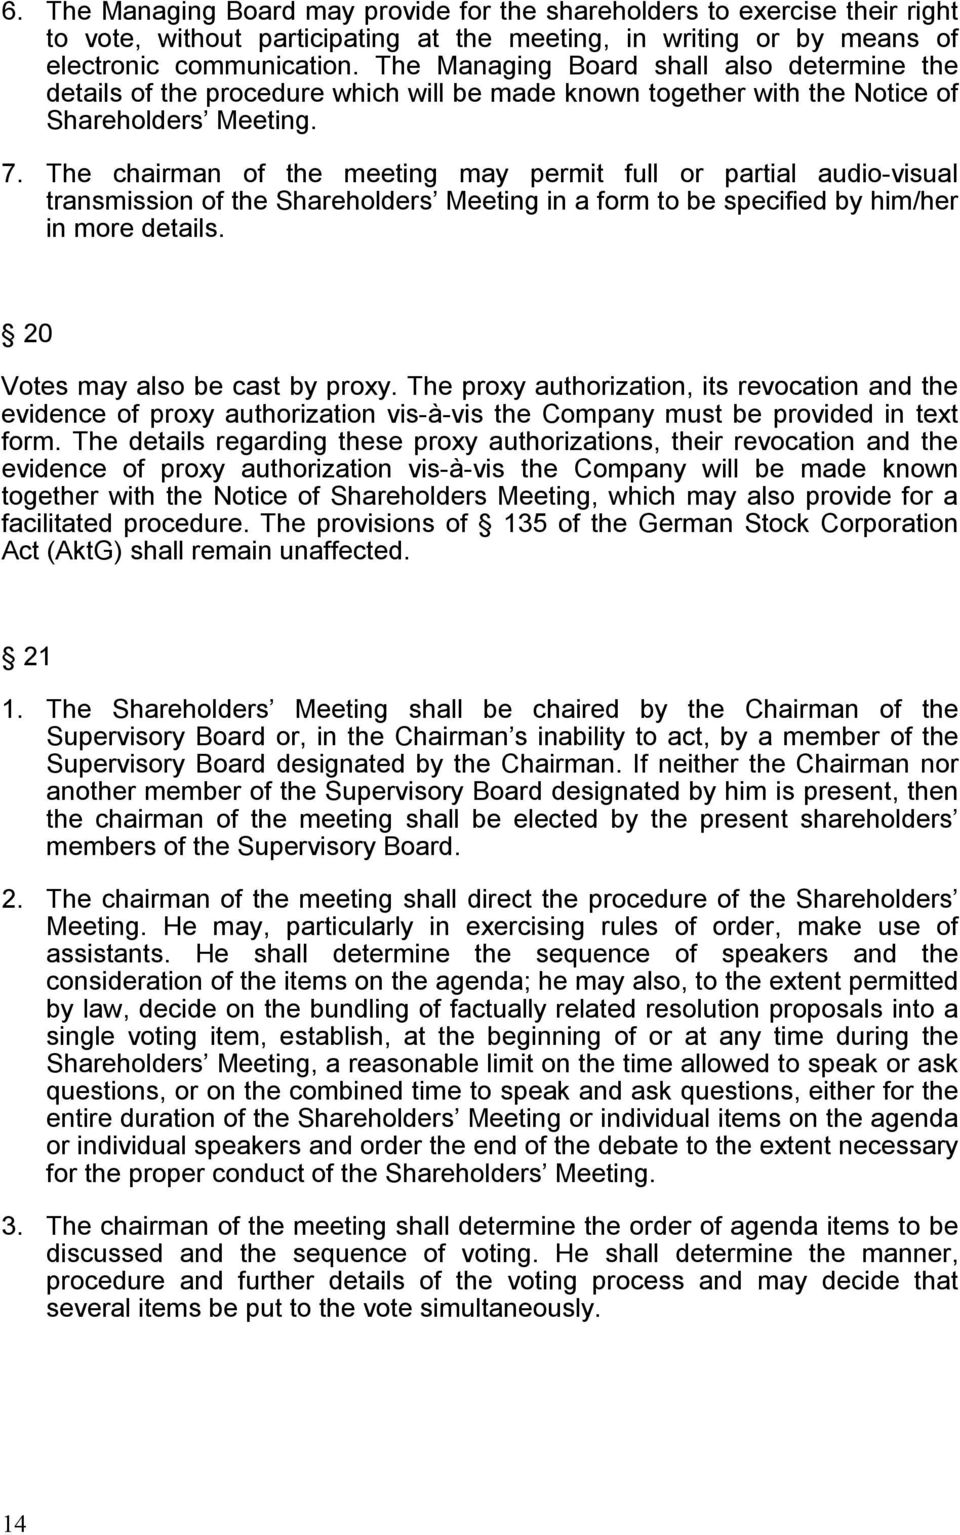 The chairman of the meeting may permit full or partial audio-visual transmission of the Shareholders Meeting in a form to be specified by him/her in more details. 20 Votes may also be cast by proxy.